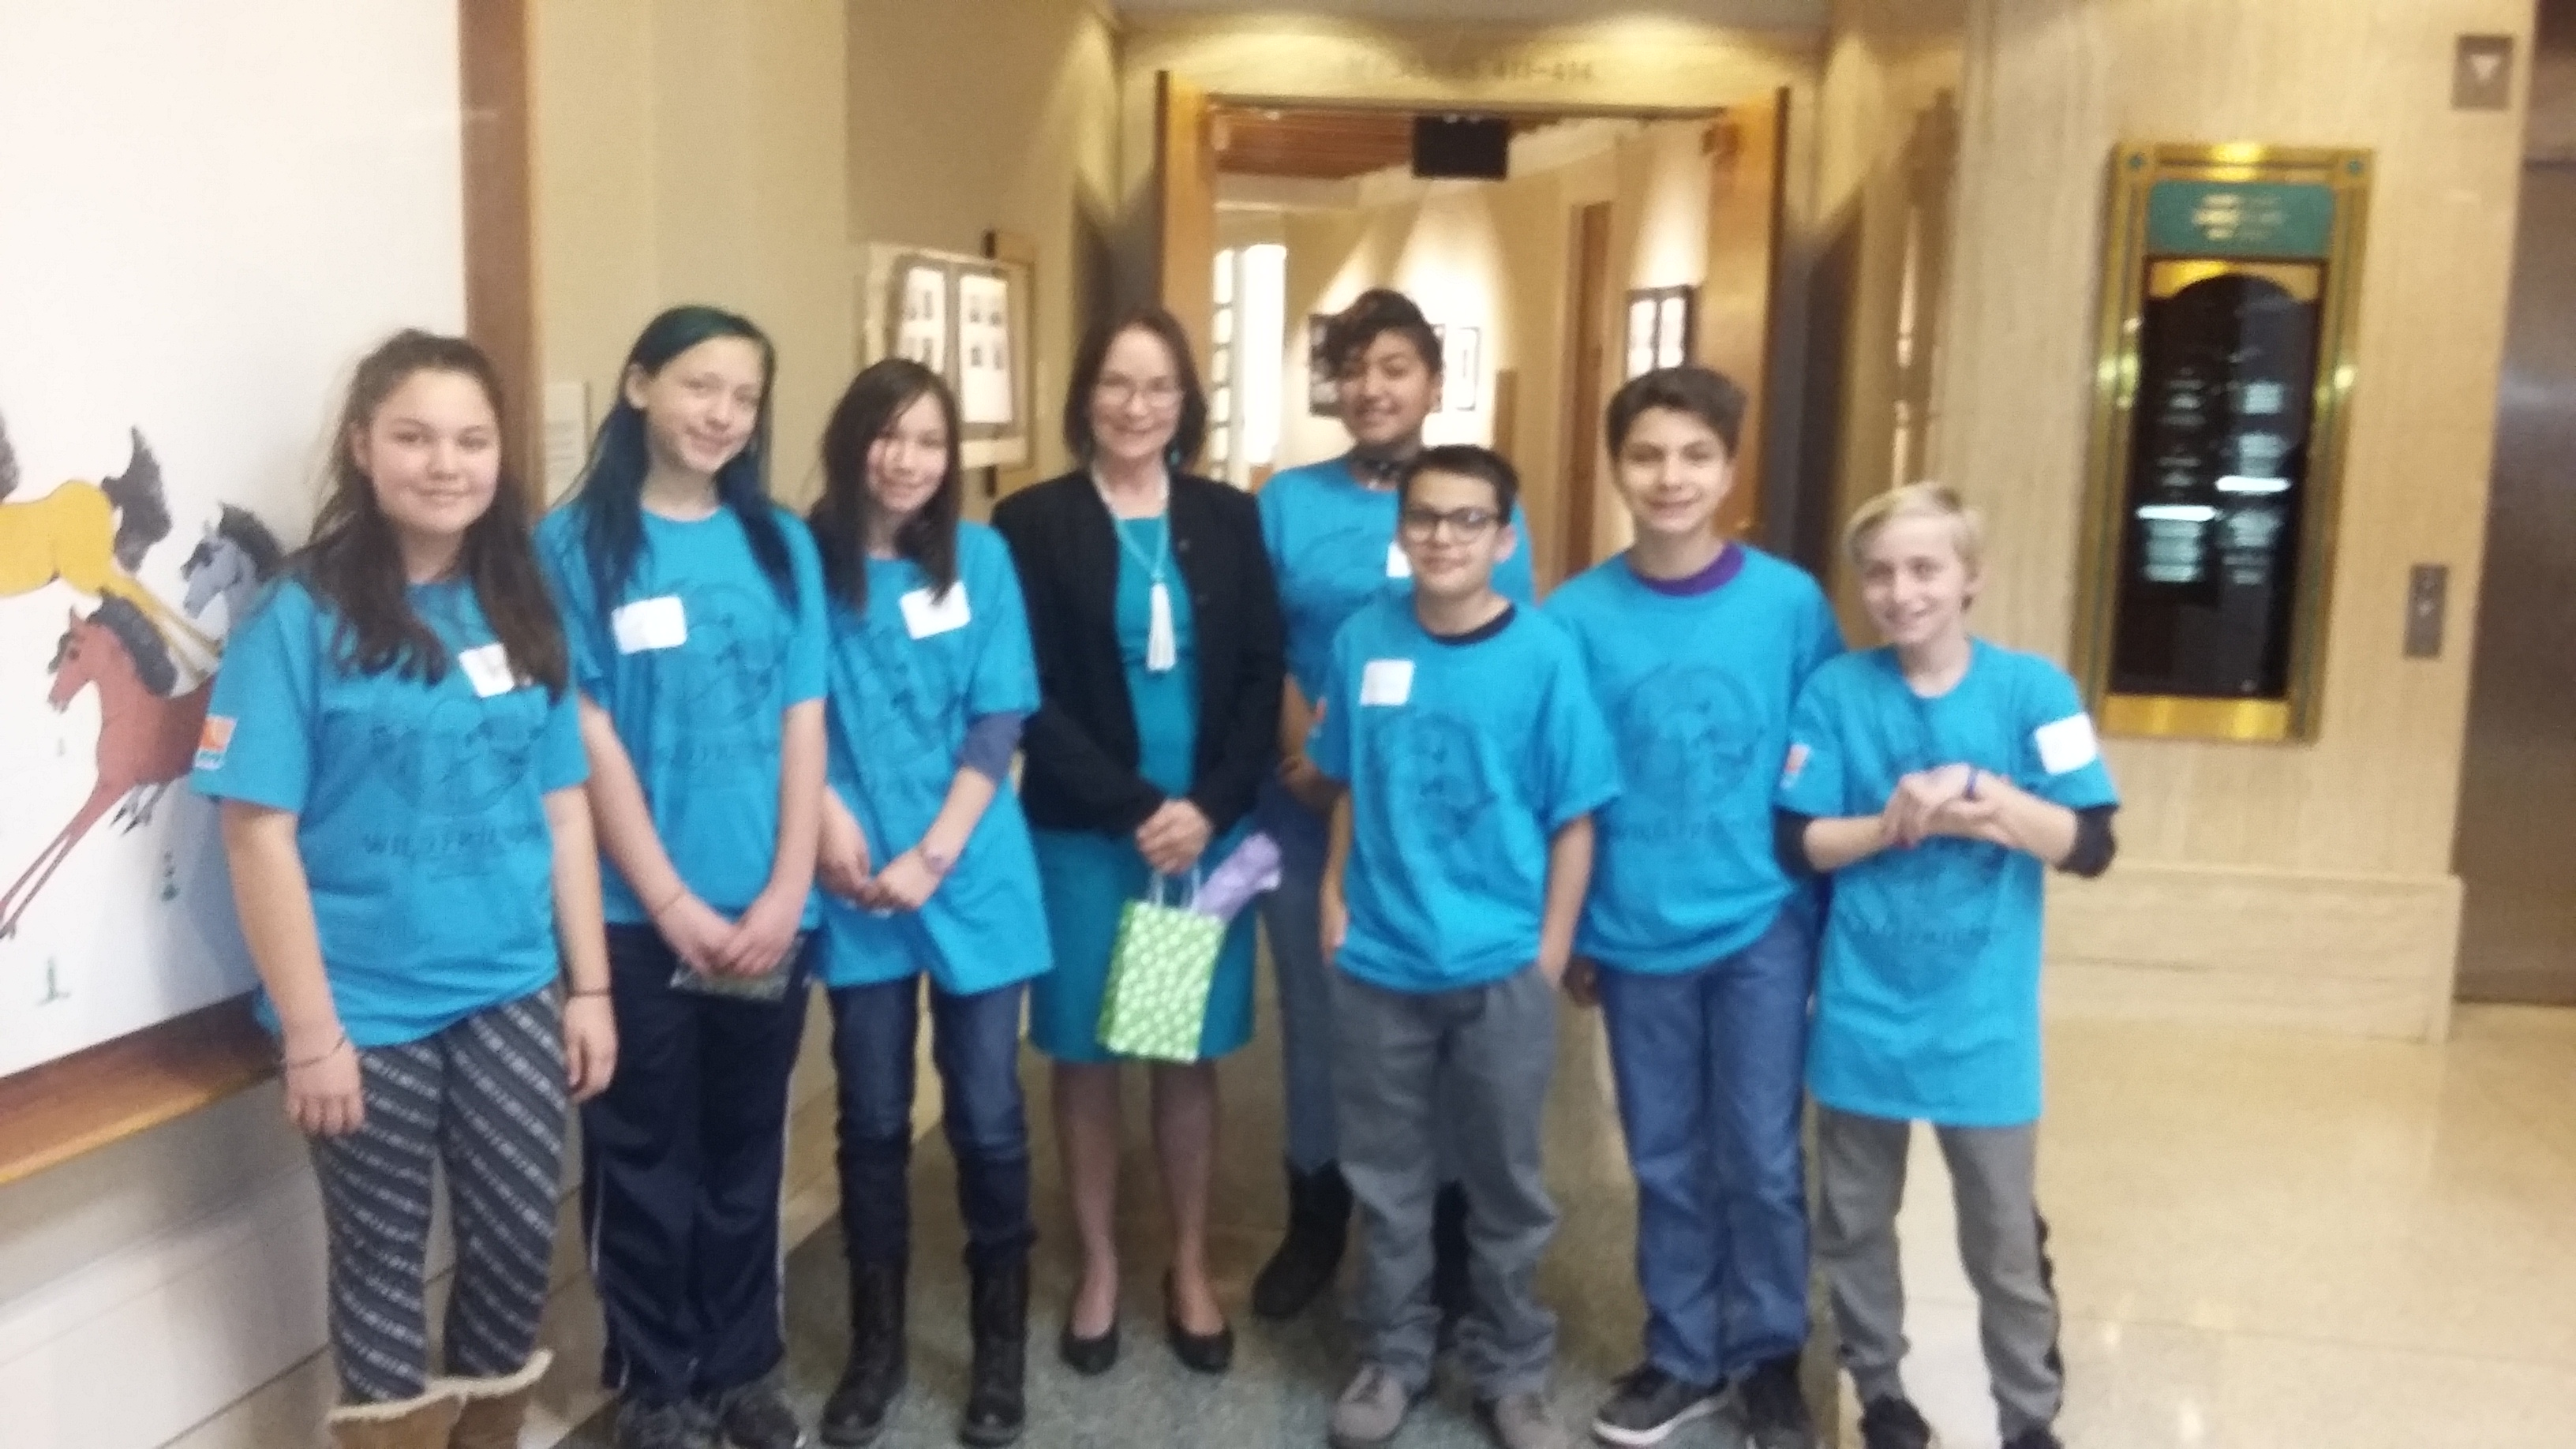 Students from Mt. Mahogany Community School in Albuquerque with Senator Mimi Stewart